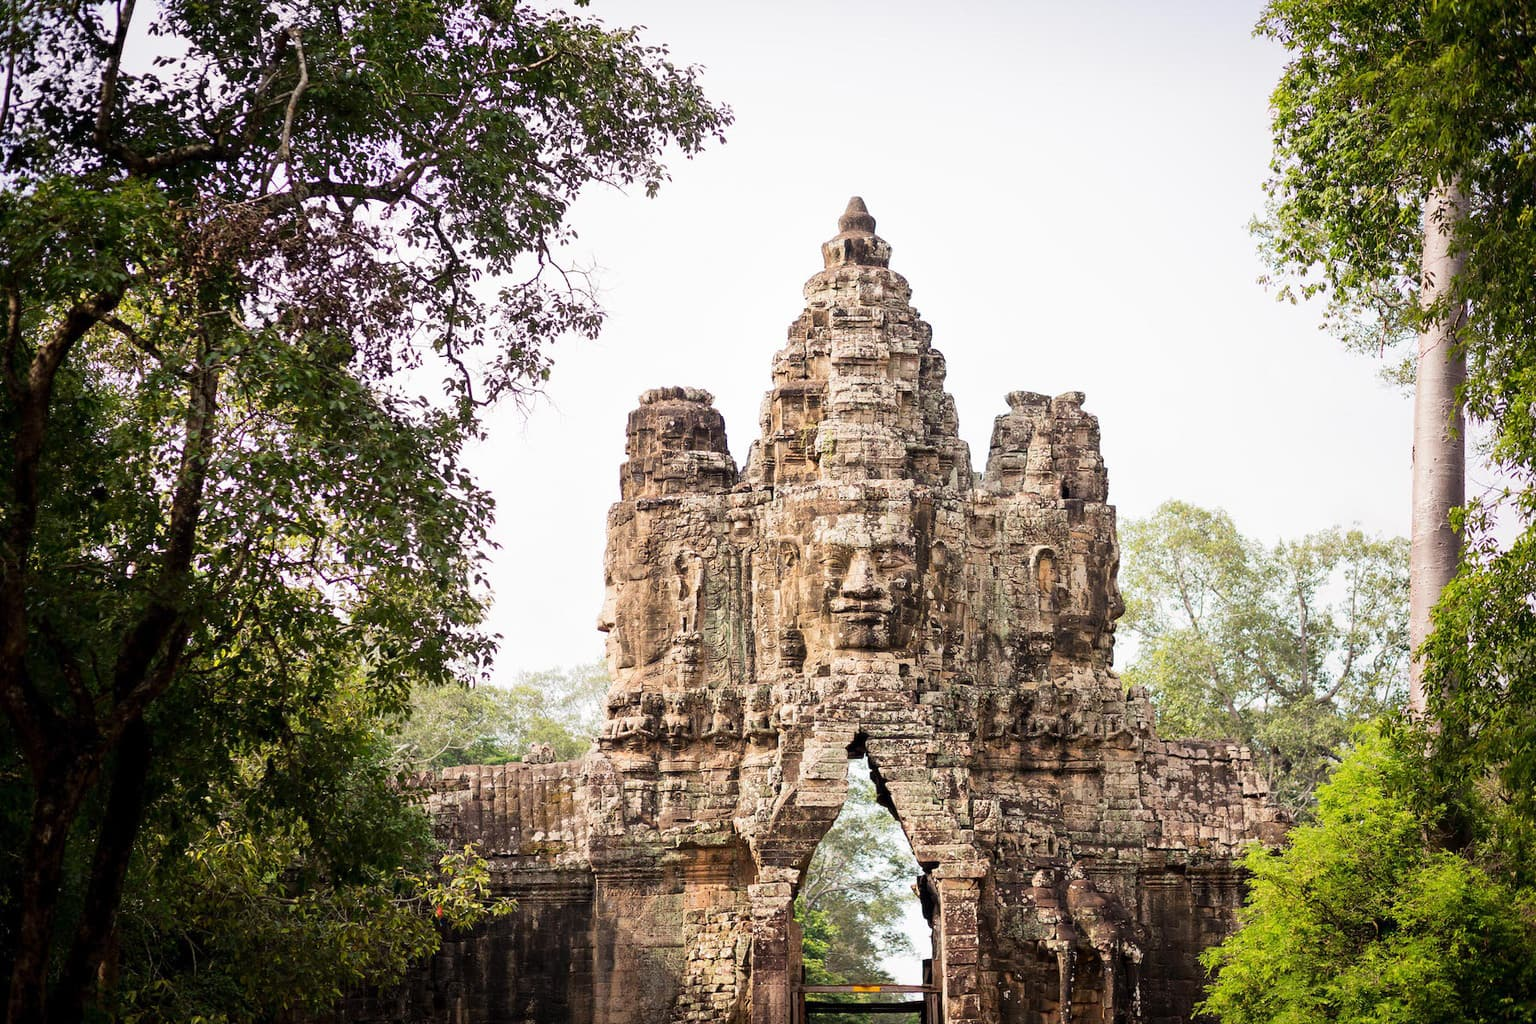 Angkor Tom gate